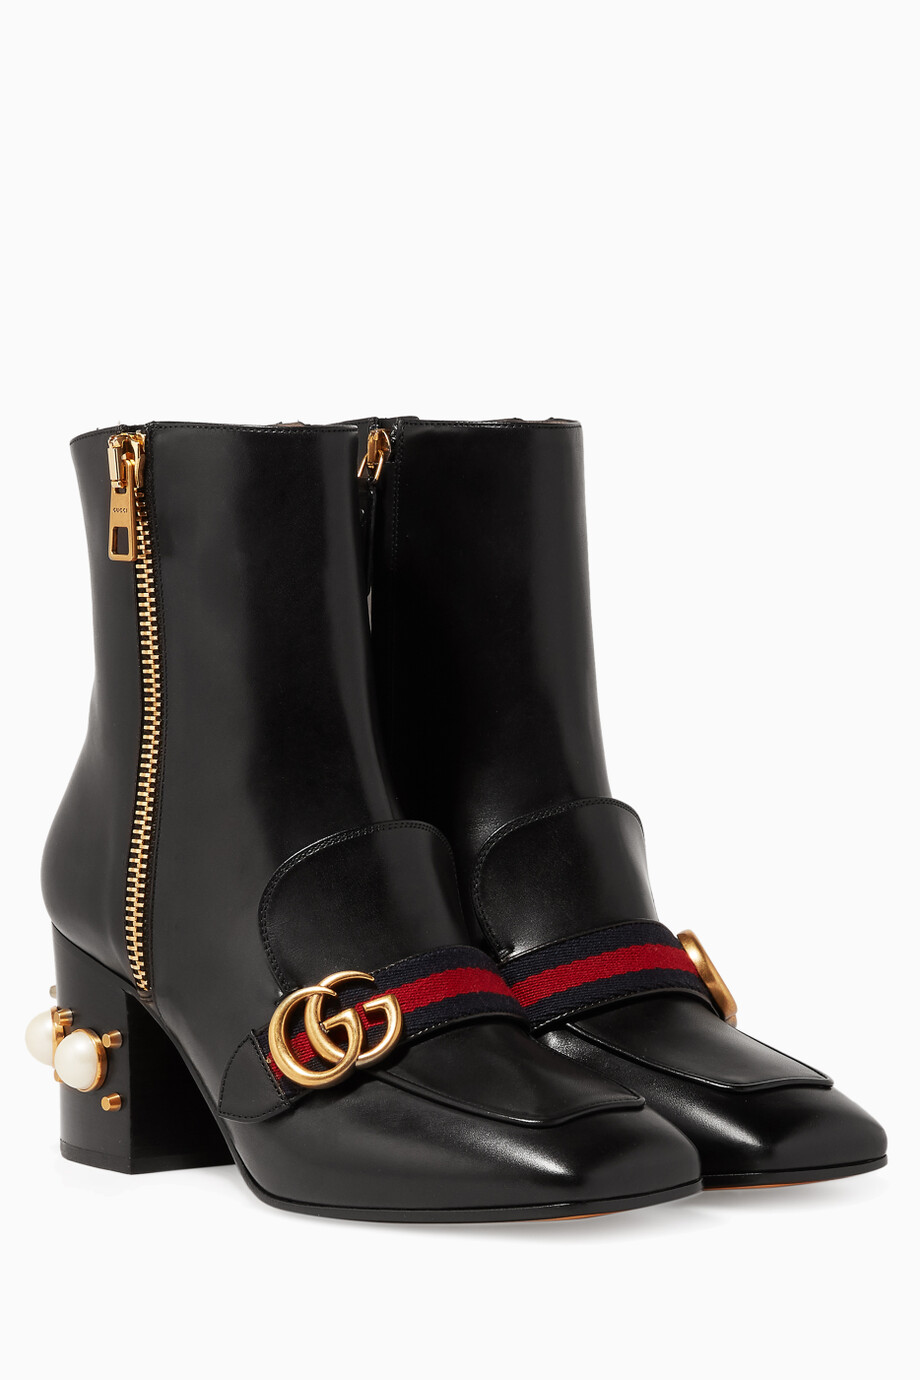 450575bd71c Shop Gucci Black Black Leather Pearl-Embellished Ankle Boots for ...